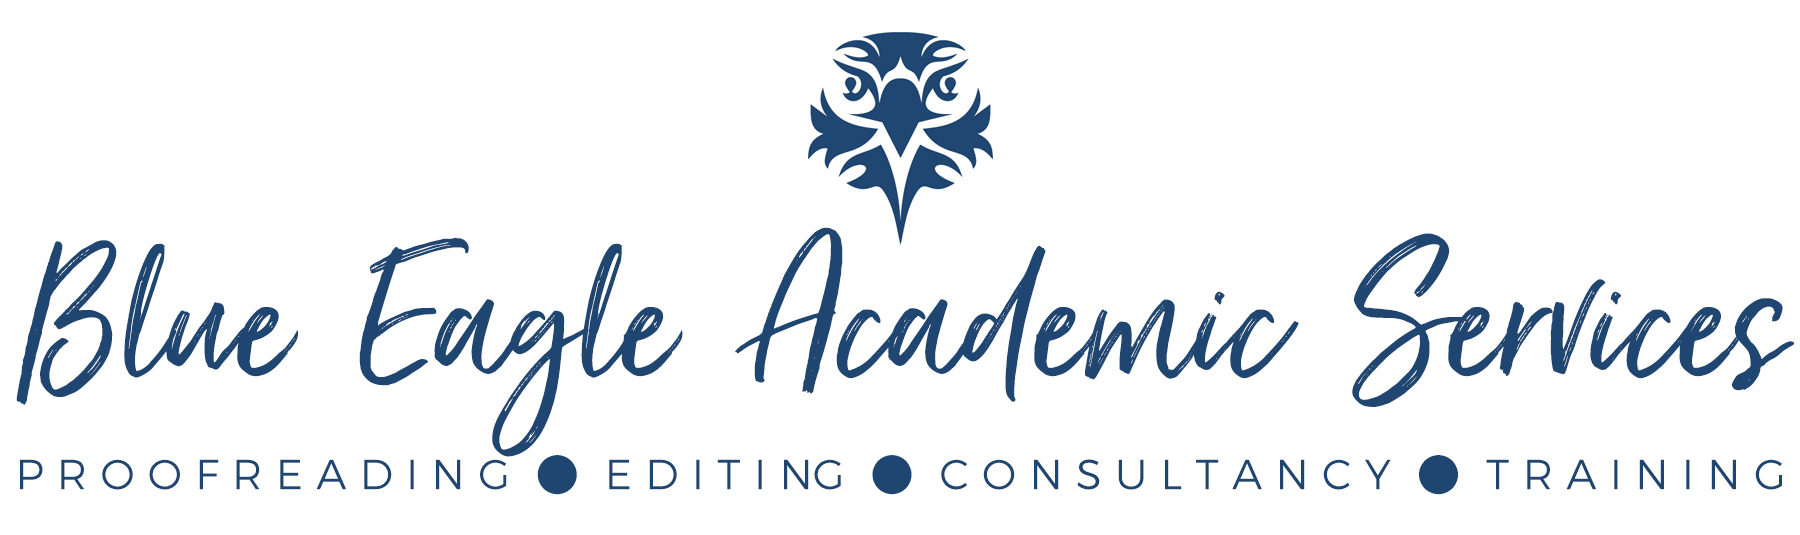 Blue Eagle Academic Services